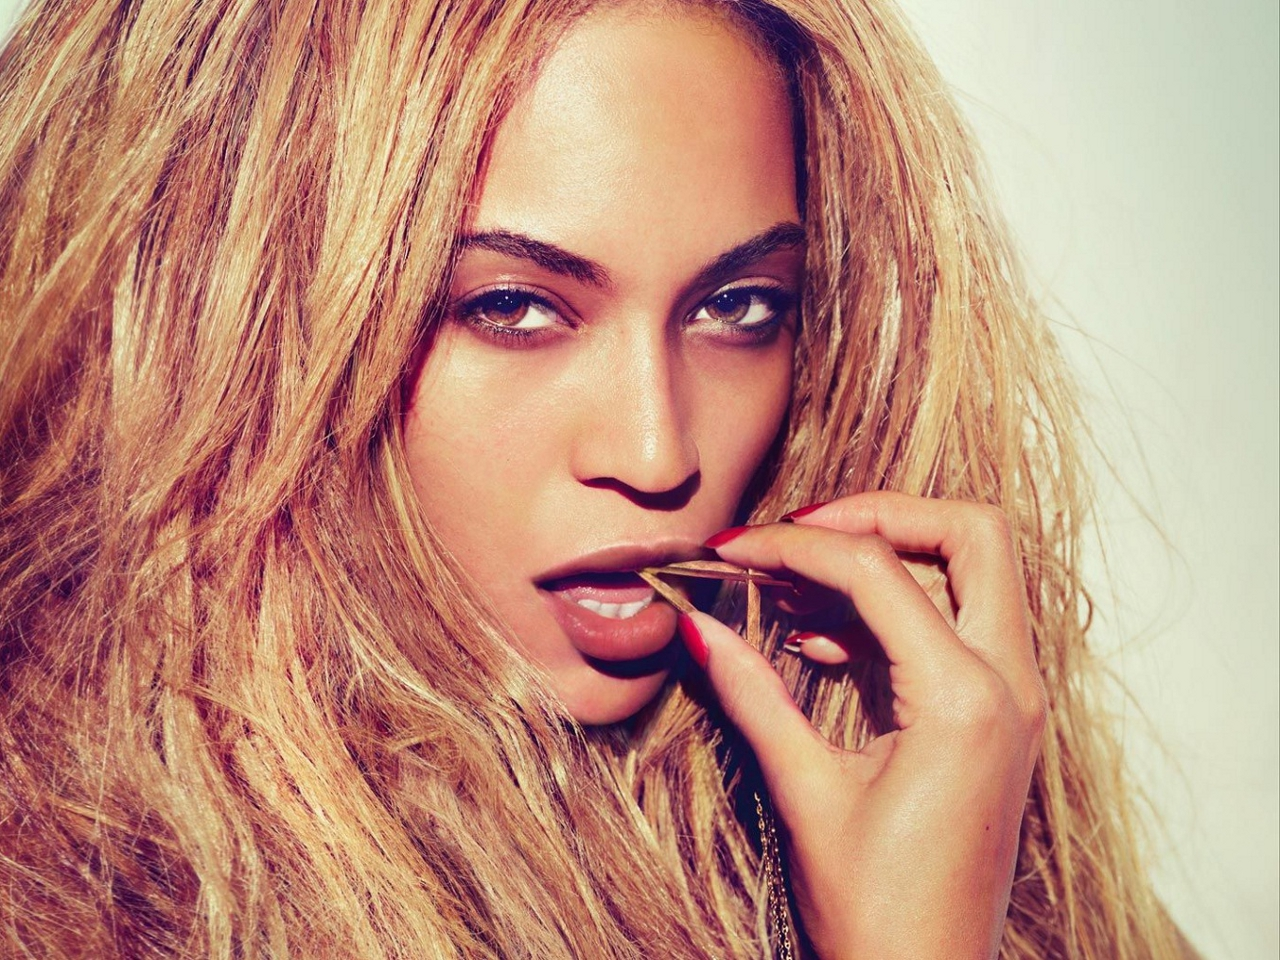 Beyonce images Beyonce album 4 HD wallpaper and background photos